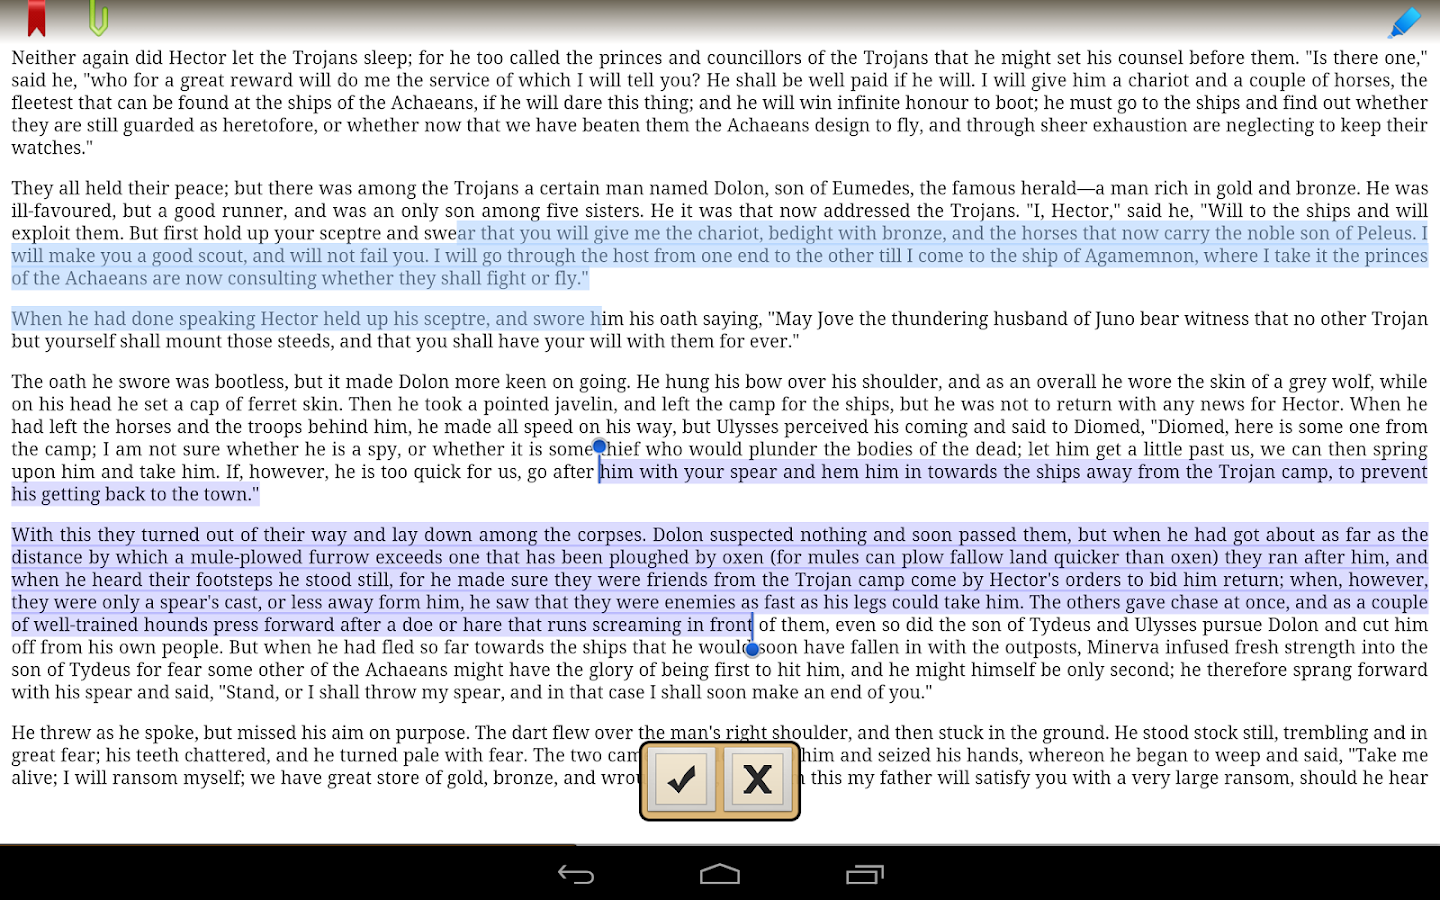 Ebook Reader Screenshot 7